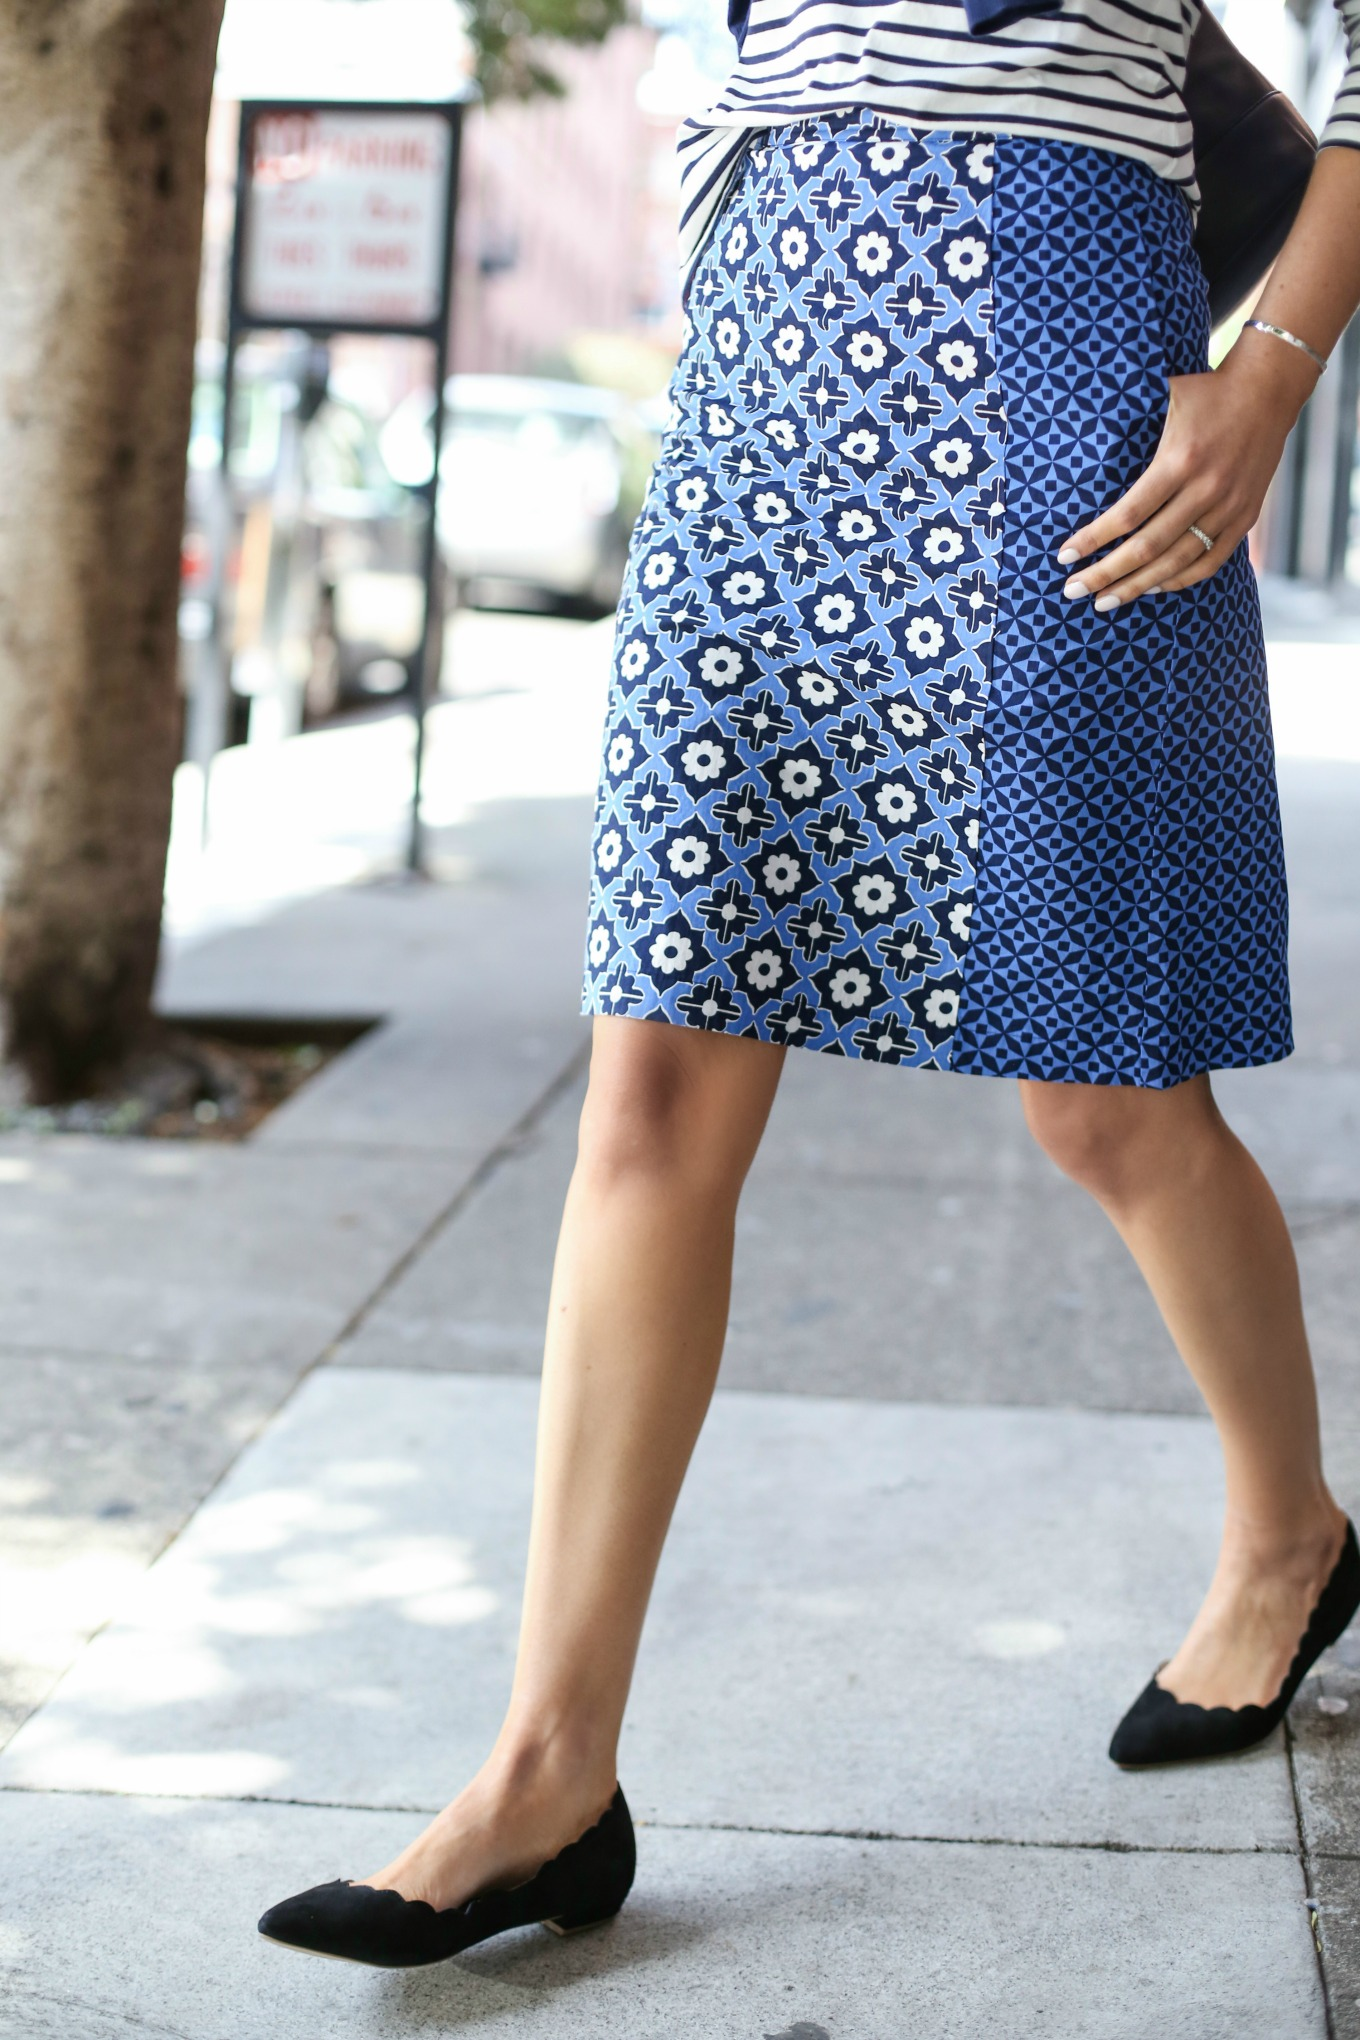 blue-and-white-pattern-pencil-skirt-scalloped-ballet-flats-casual-friday-work-outfit-fashion-blog-working-women-680x1020@2x